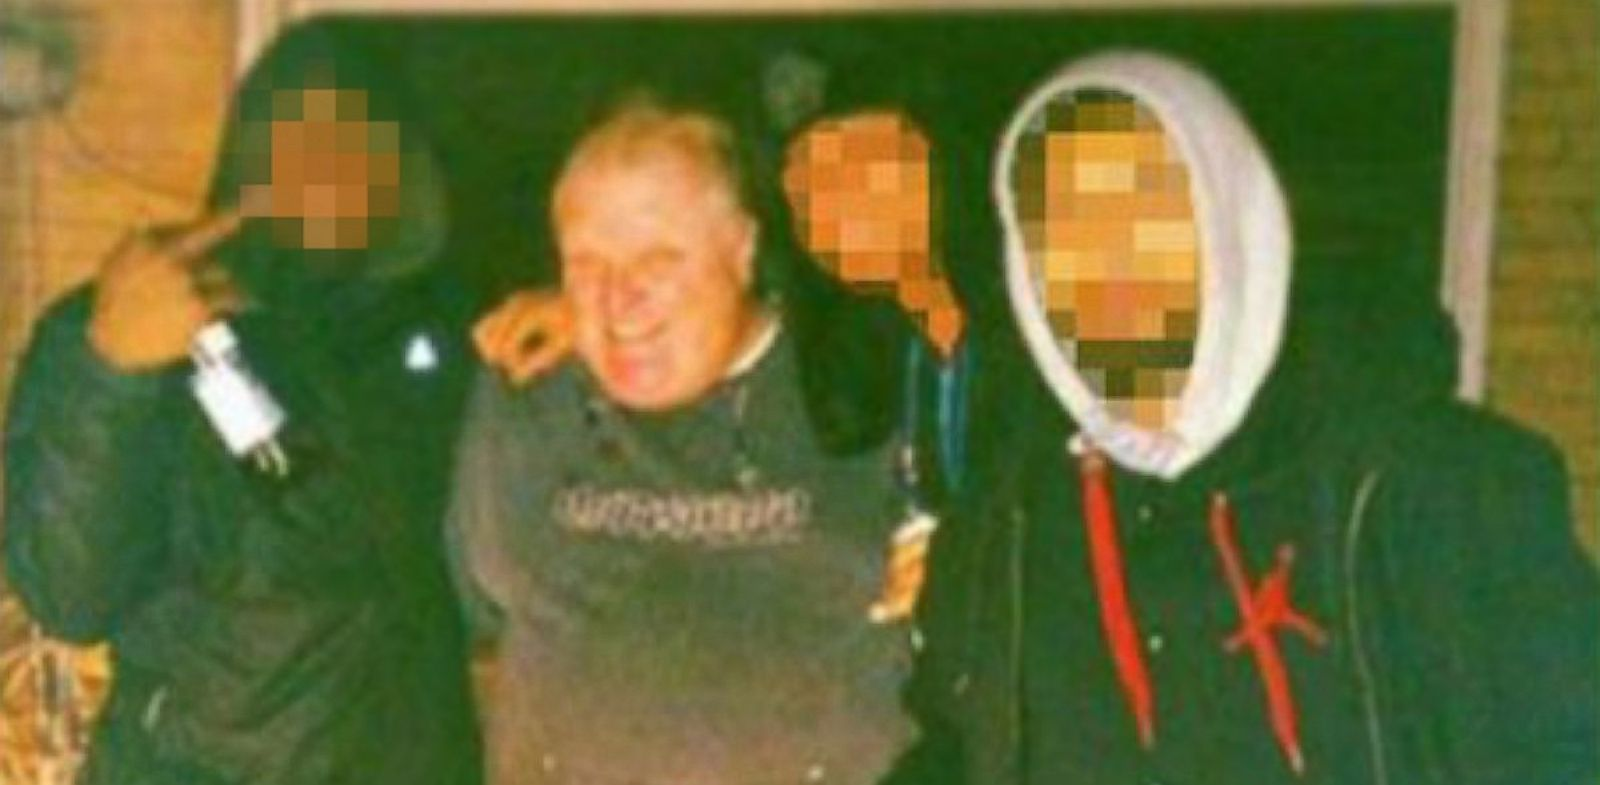 PHOTO: This photo of Toronto Mayor Rob Ford was produced by a person who claims to have a video in which Ford appears to be smoking crack cocaine.